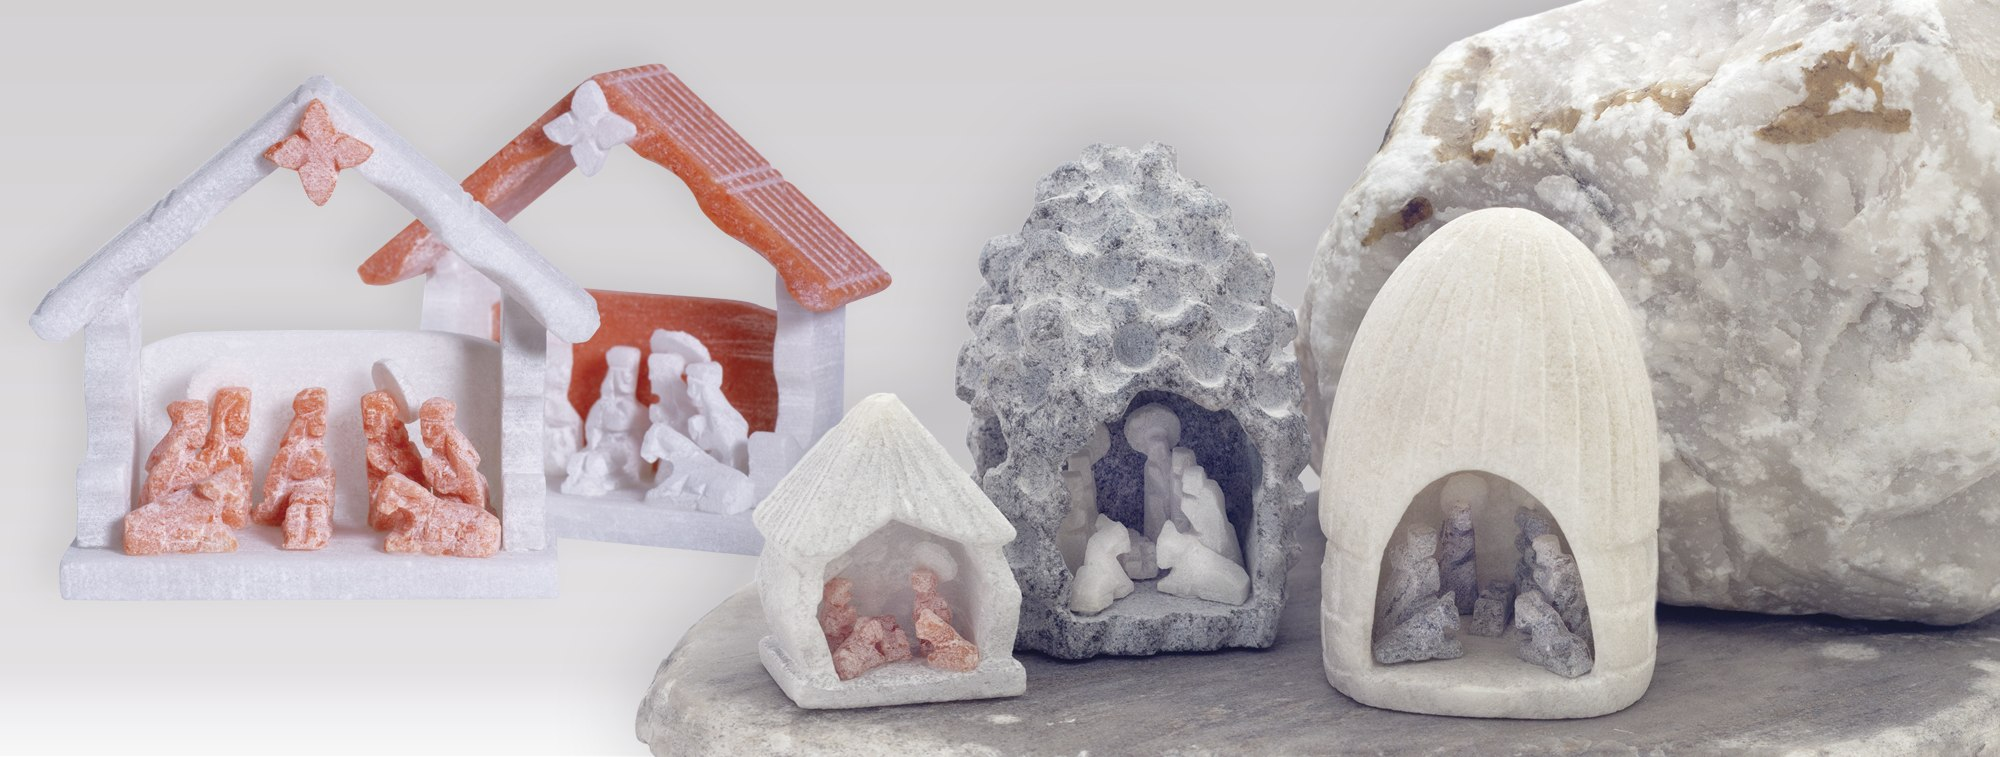 hand-carved alabaster nativities